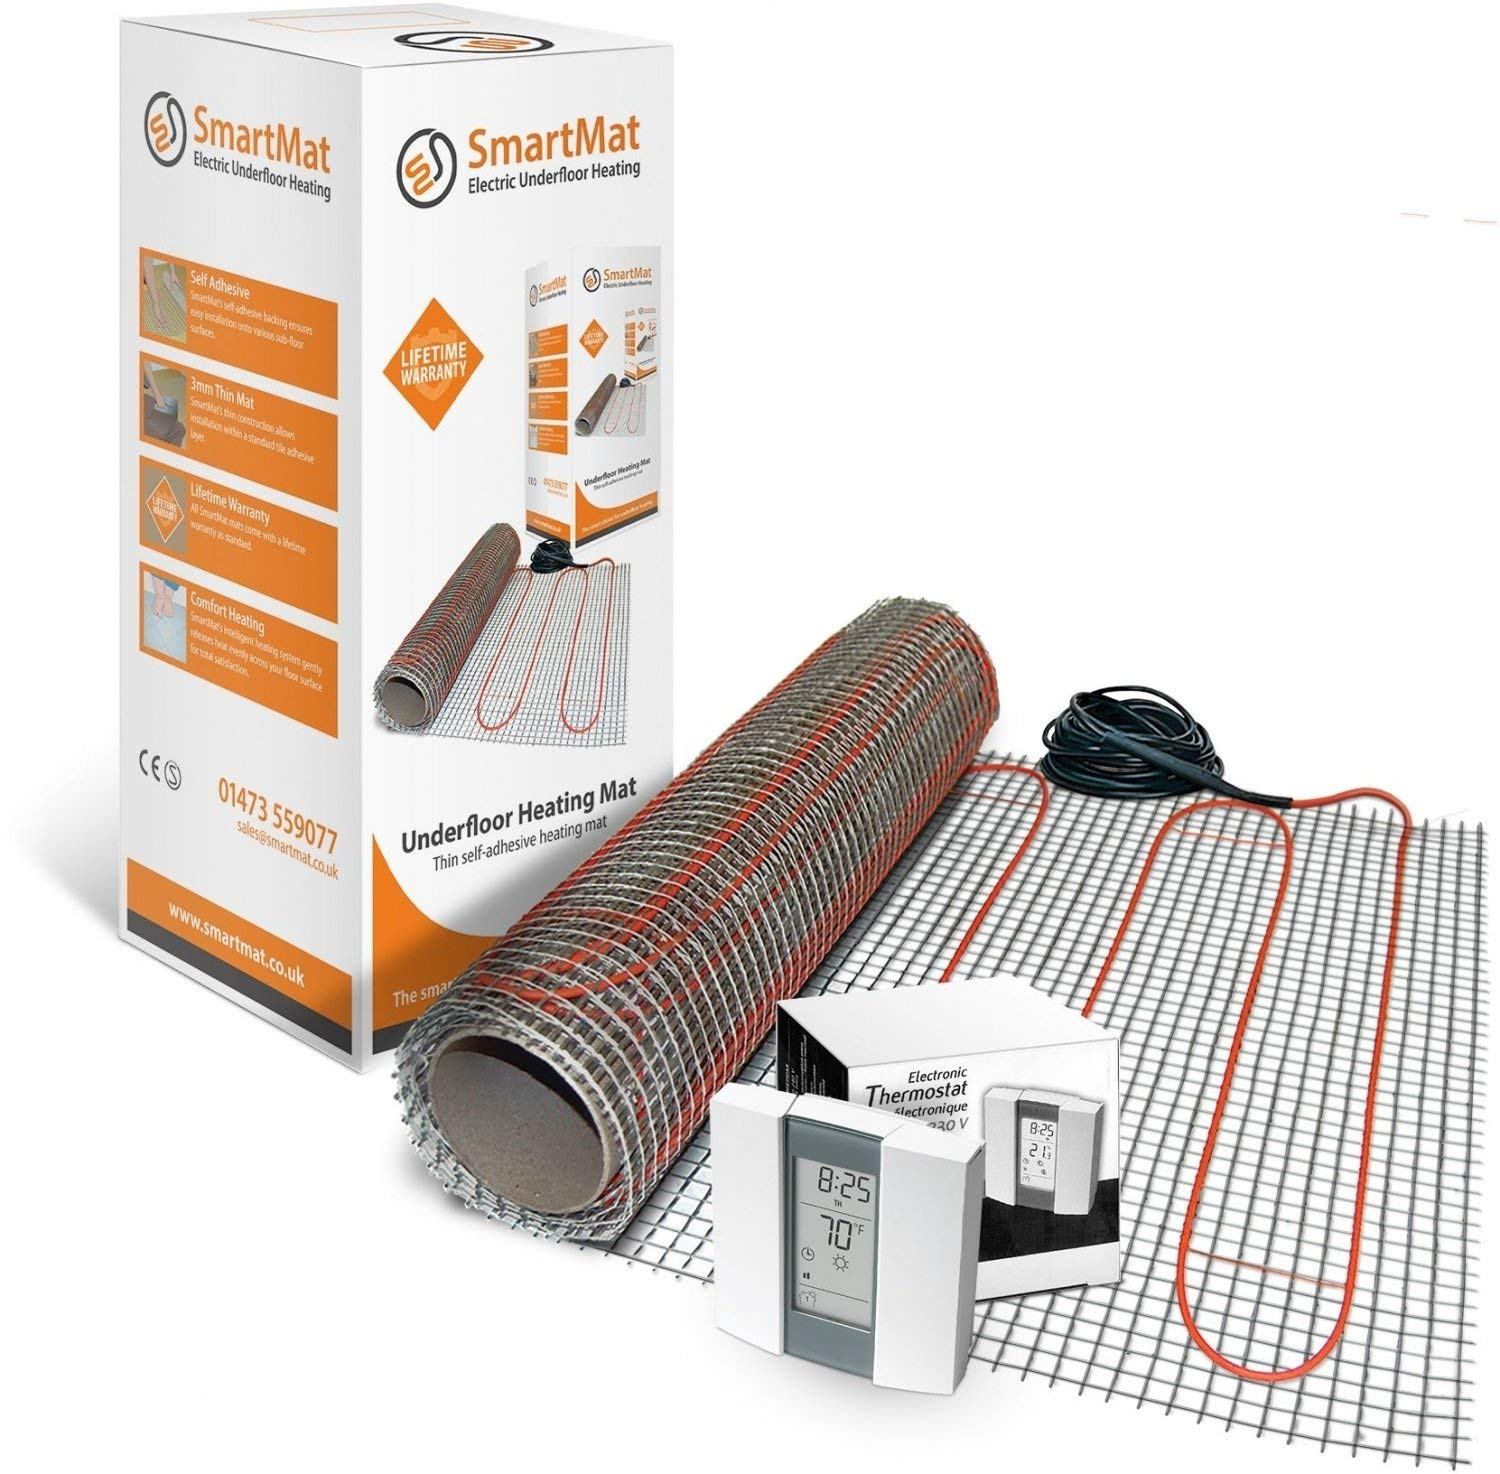 Electric Underfloor Heating Mat Kit for Tiles 150 W/m² - All Sizes & Thermostats Available (5.0m2 750w, Thermostat Choice - Harmoni 25)